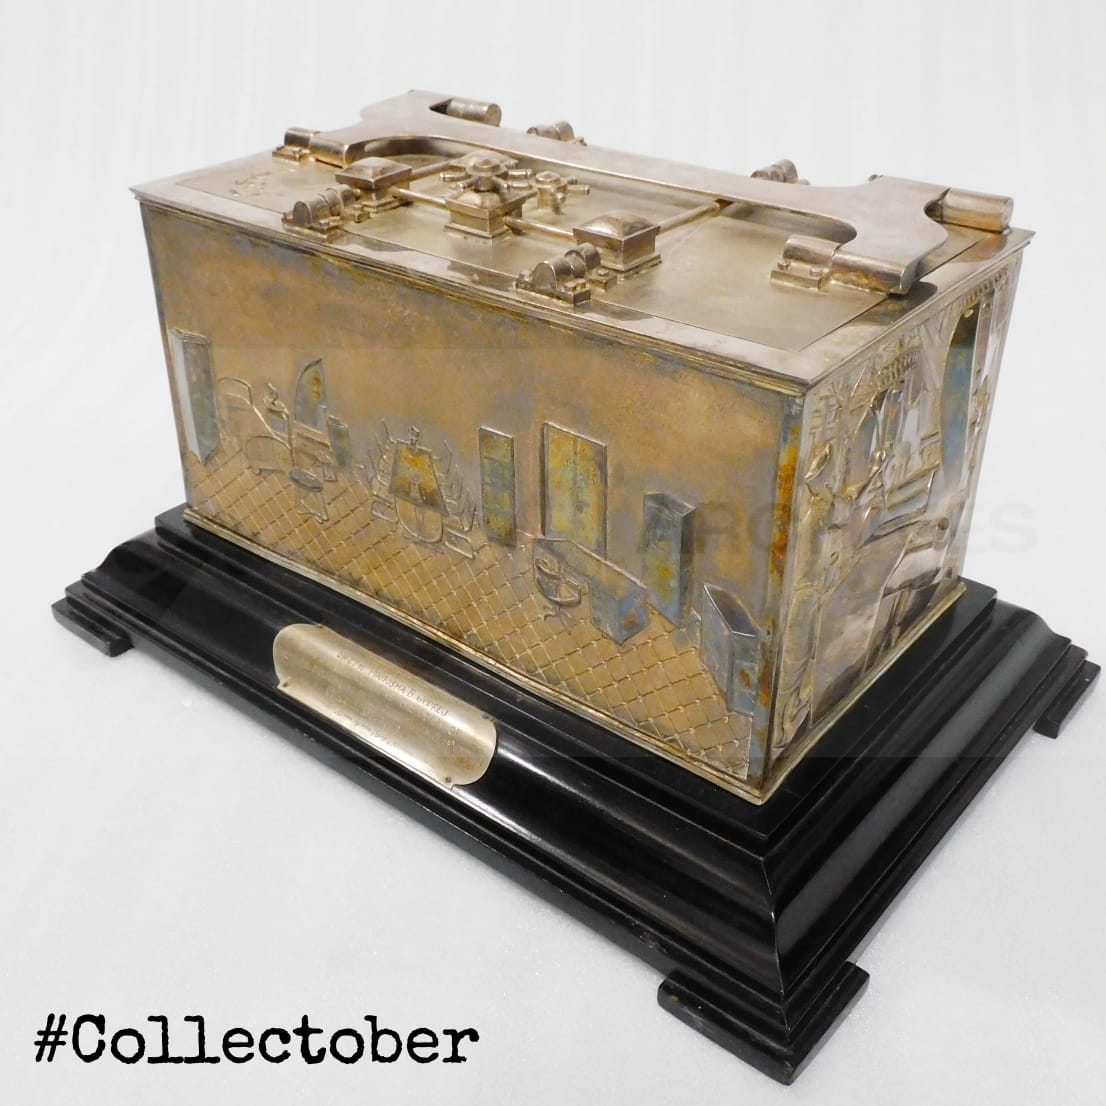 #Collectober  This adorable silver casket is one of our favourites! Godrej employees presented this lovely gift to their beloved 'Pirojsha Seth' on his son Burjor Godrej's wedding on 15th April 1941 #Memorabilia #Archival #ArchivalObjects #Archiving #ProductHistory #UnusualObject https://t.co/GhaqJVV5WU